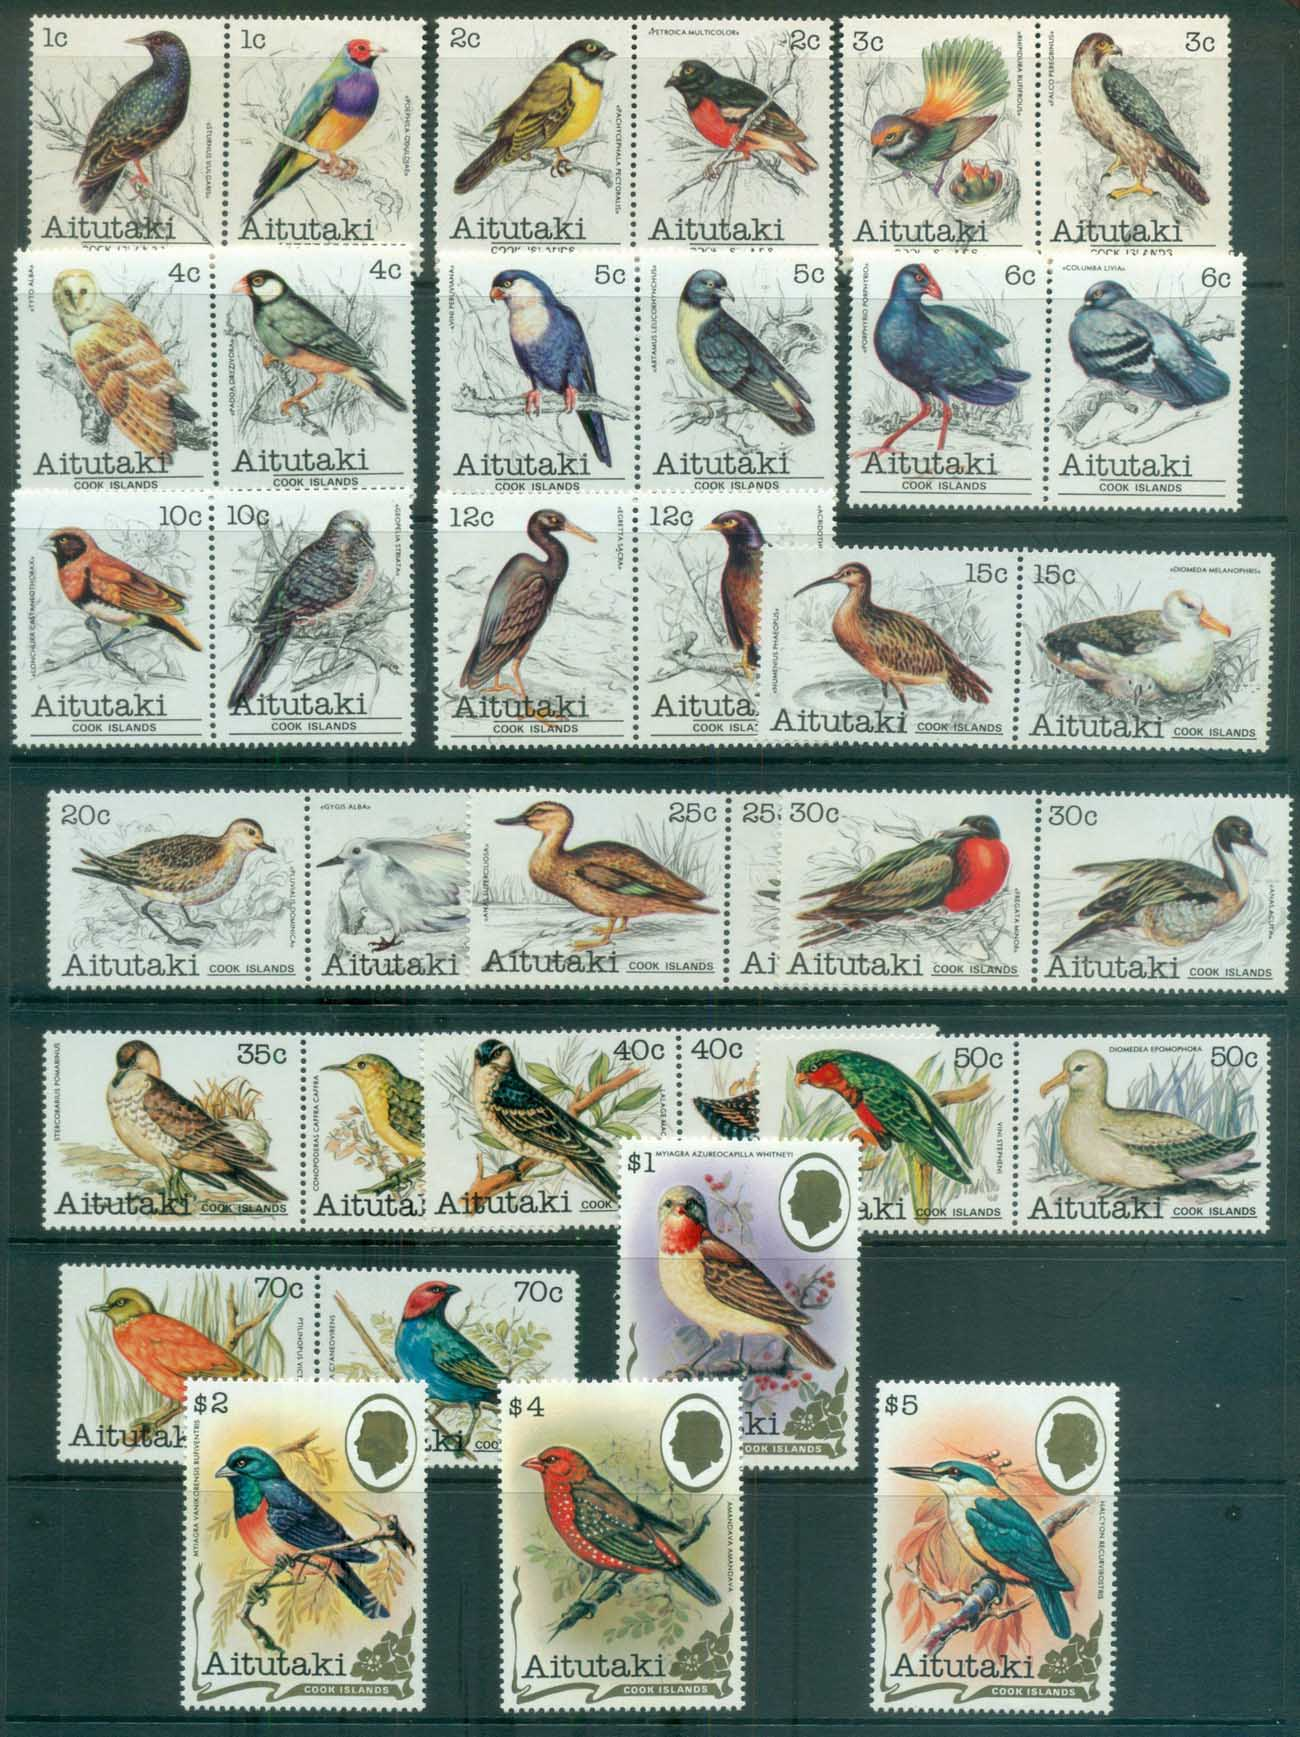 Aitutaki 1981 Birds (36) MUH lot81344